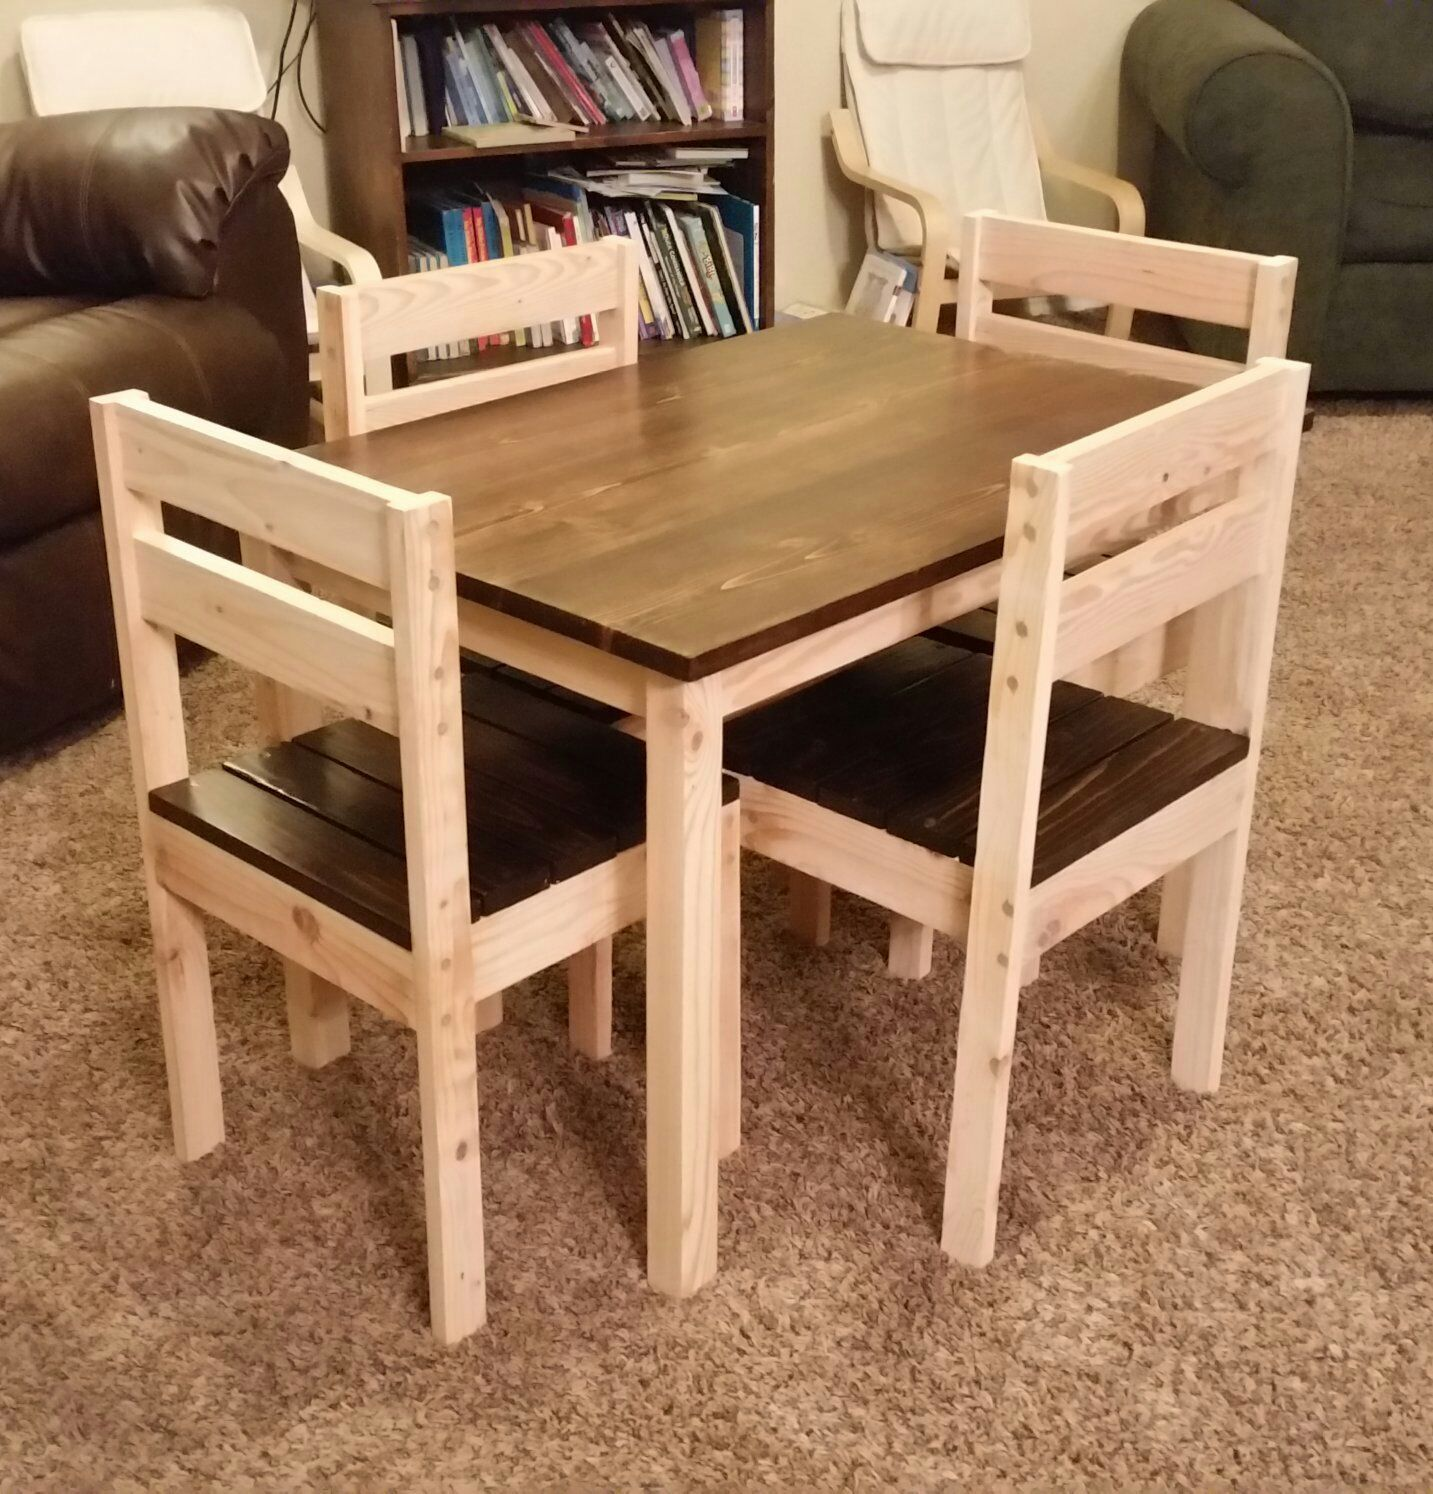 kids table and chairs do it yourself home projects from ana white more